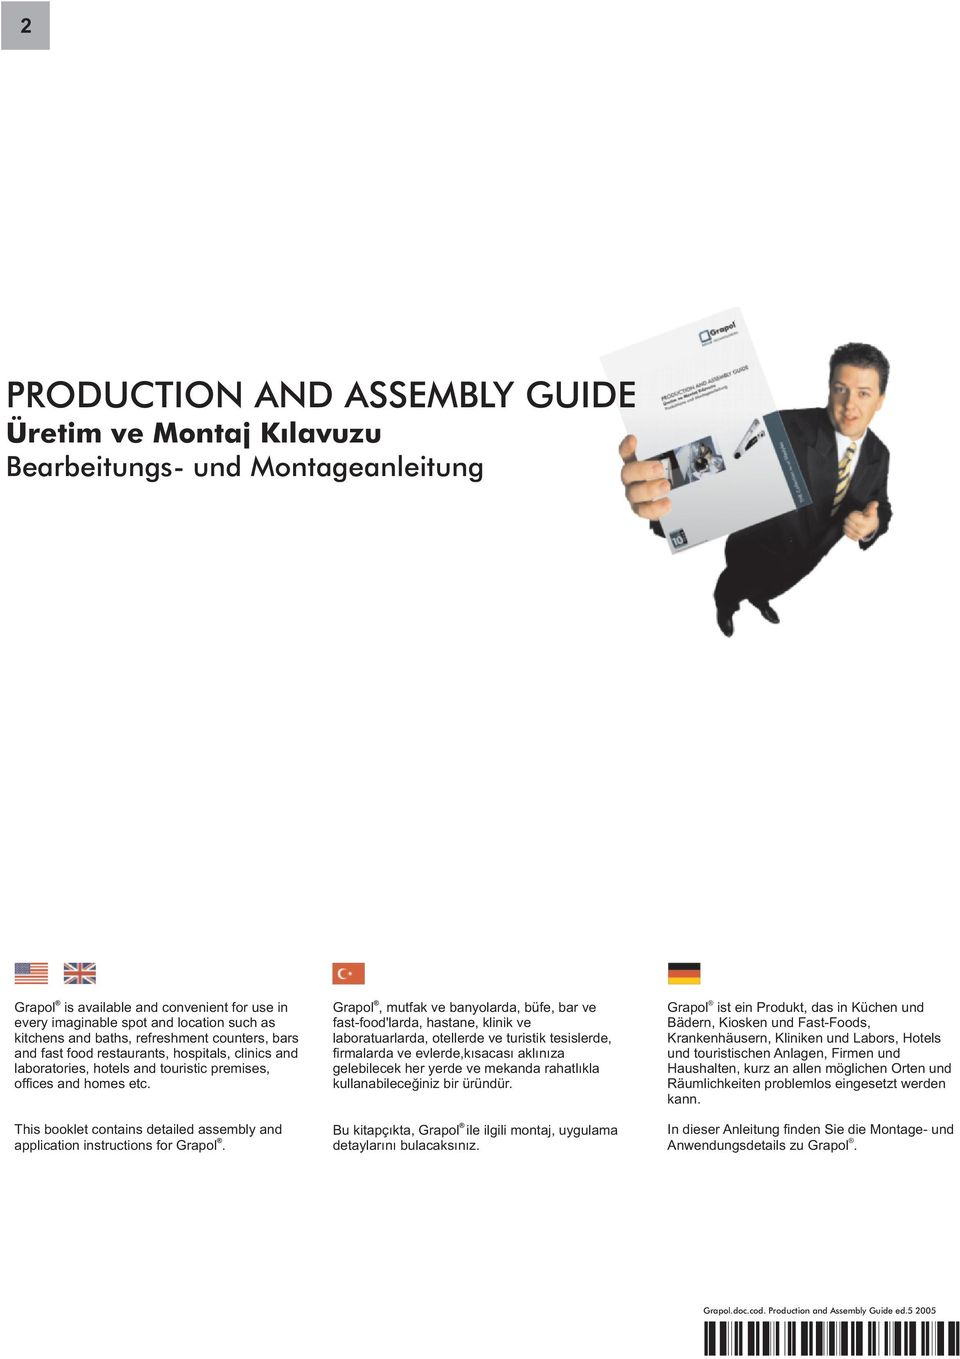 This booklet contains detailed assembly and application instructions for Grapol.